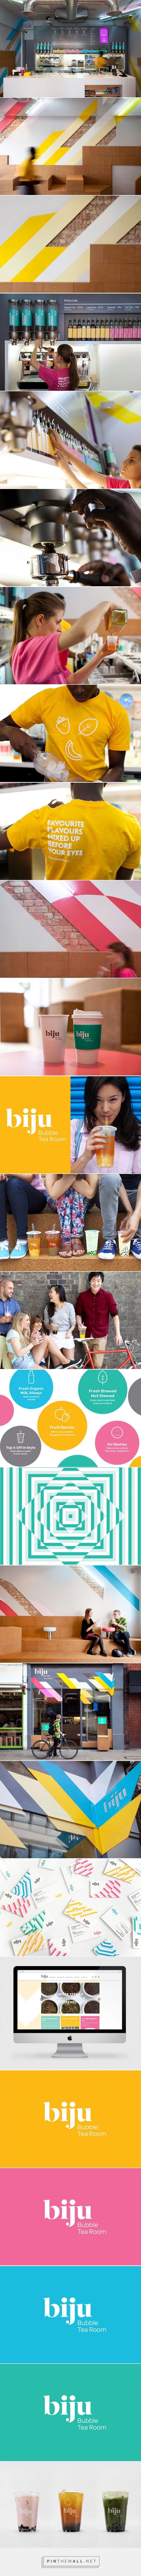 Biju Bubble Tea | Identity Designed... - a grouped images picture - Pin Them All